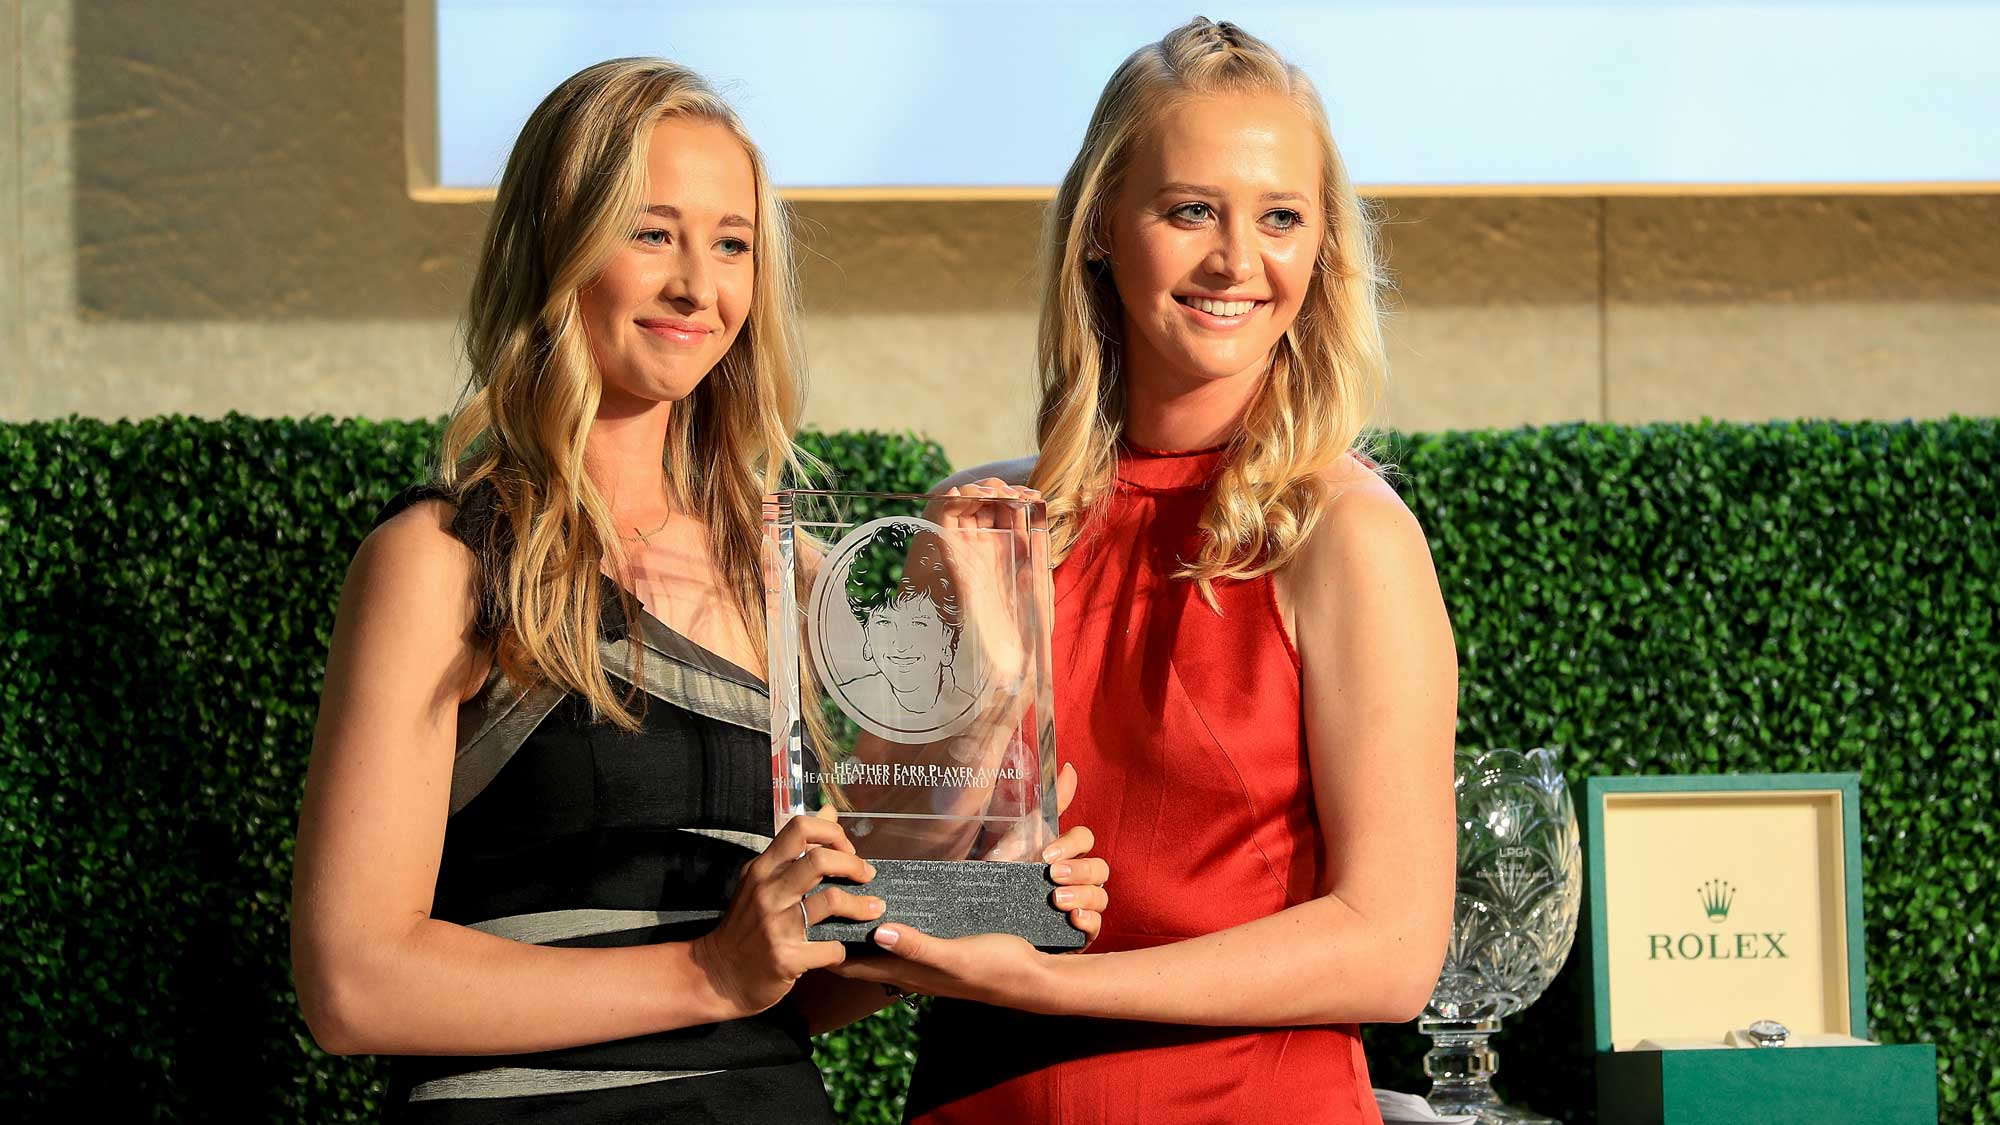 Nelly Korda presents Jessica Korda with the Heather Farr Pererverance Award during the LPGA Rolex Players Awards at the Ritz-Carlton Golf Resort